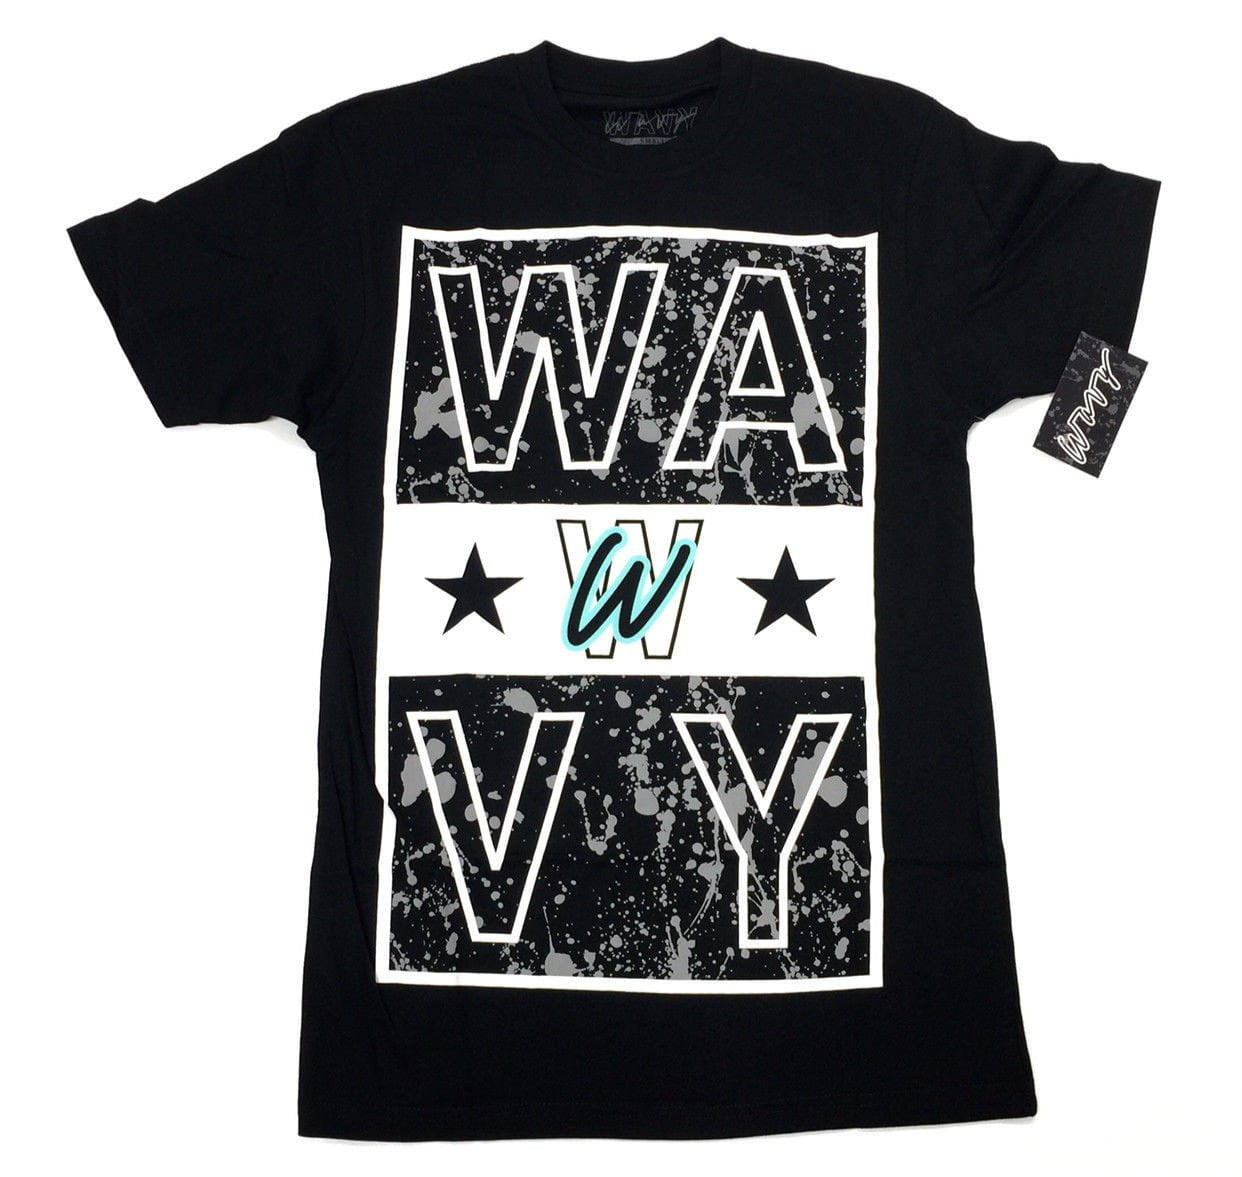 Wavy Clothing Mens Authentic Quality Fashion Cotton Tee Shirts SZ(M)